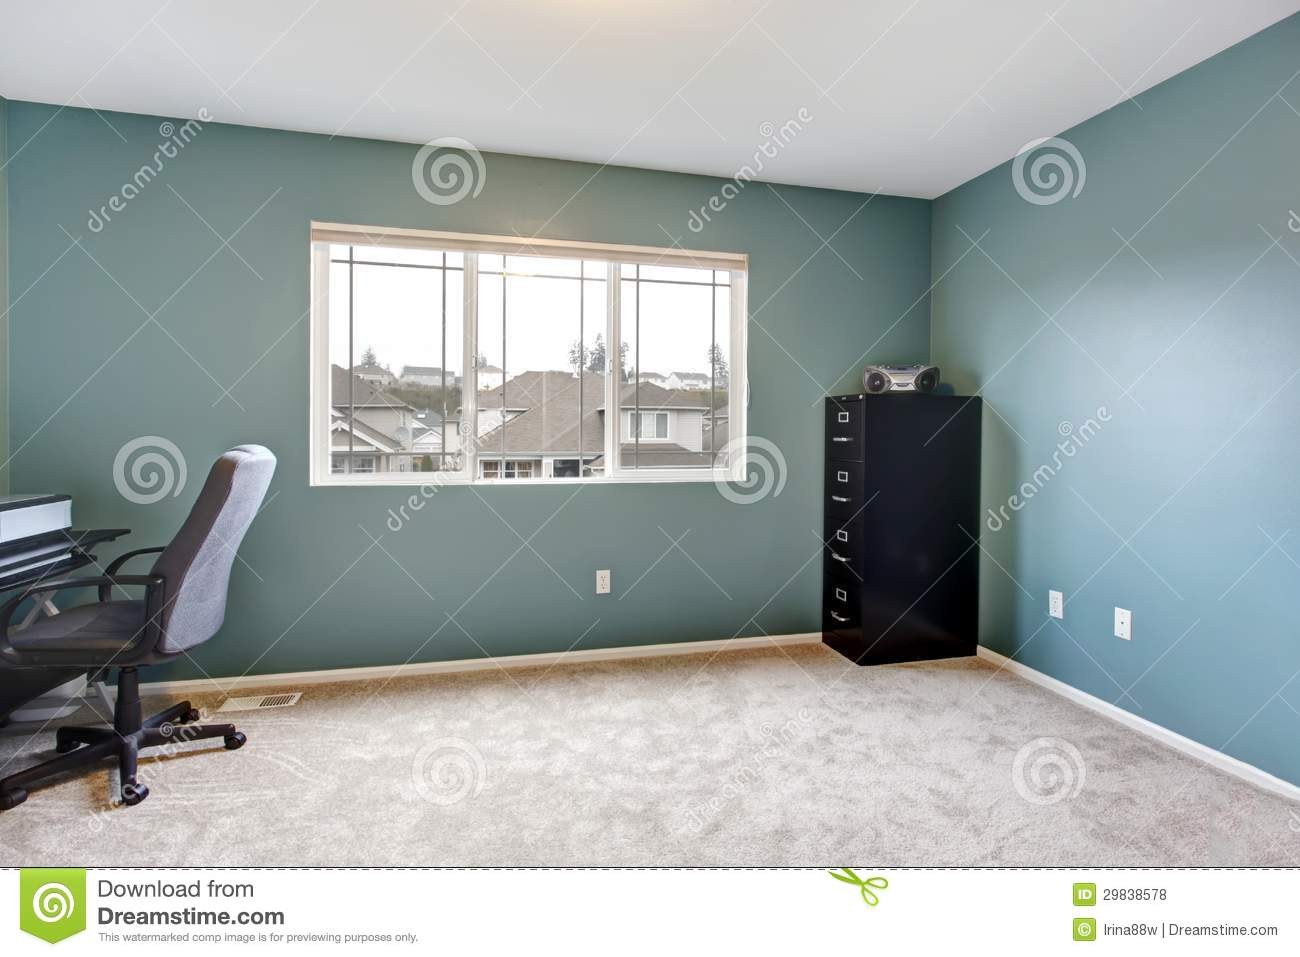 Simple home office room interior with blue walls stock photo image 29838578 - Home office room interior ...